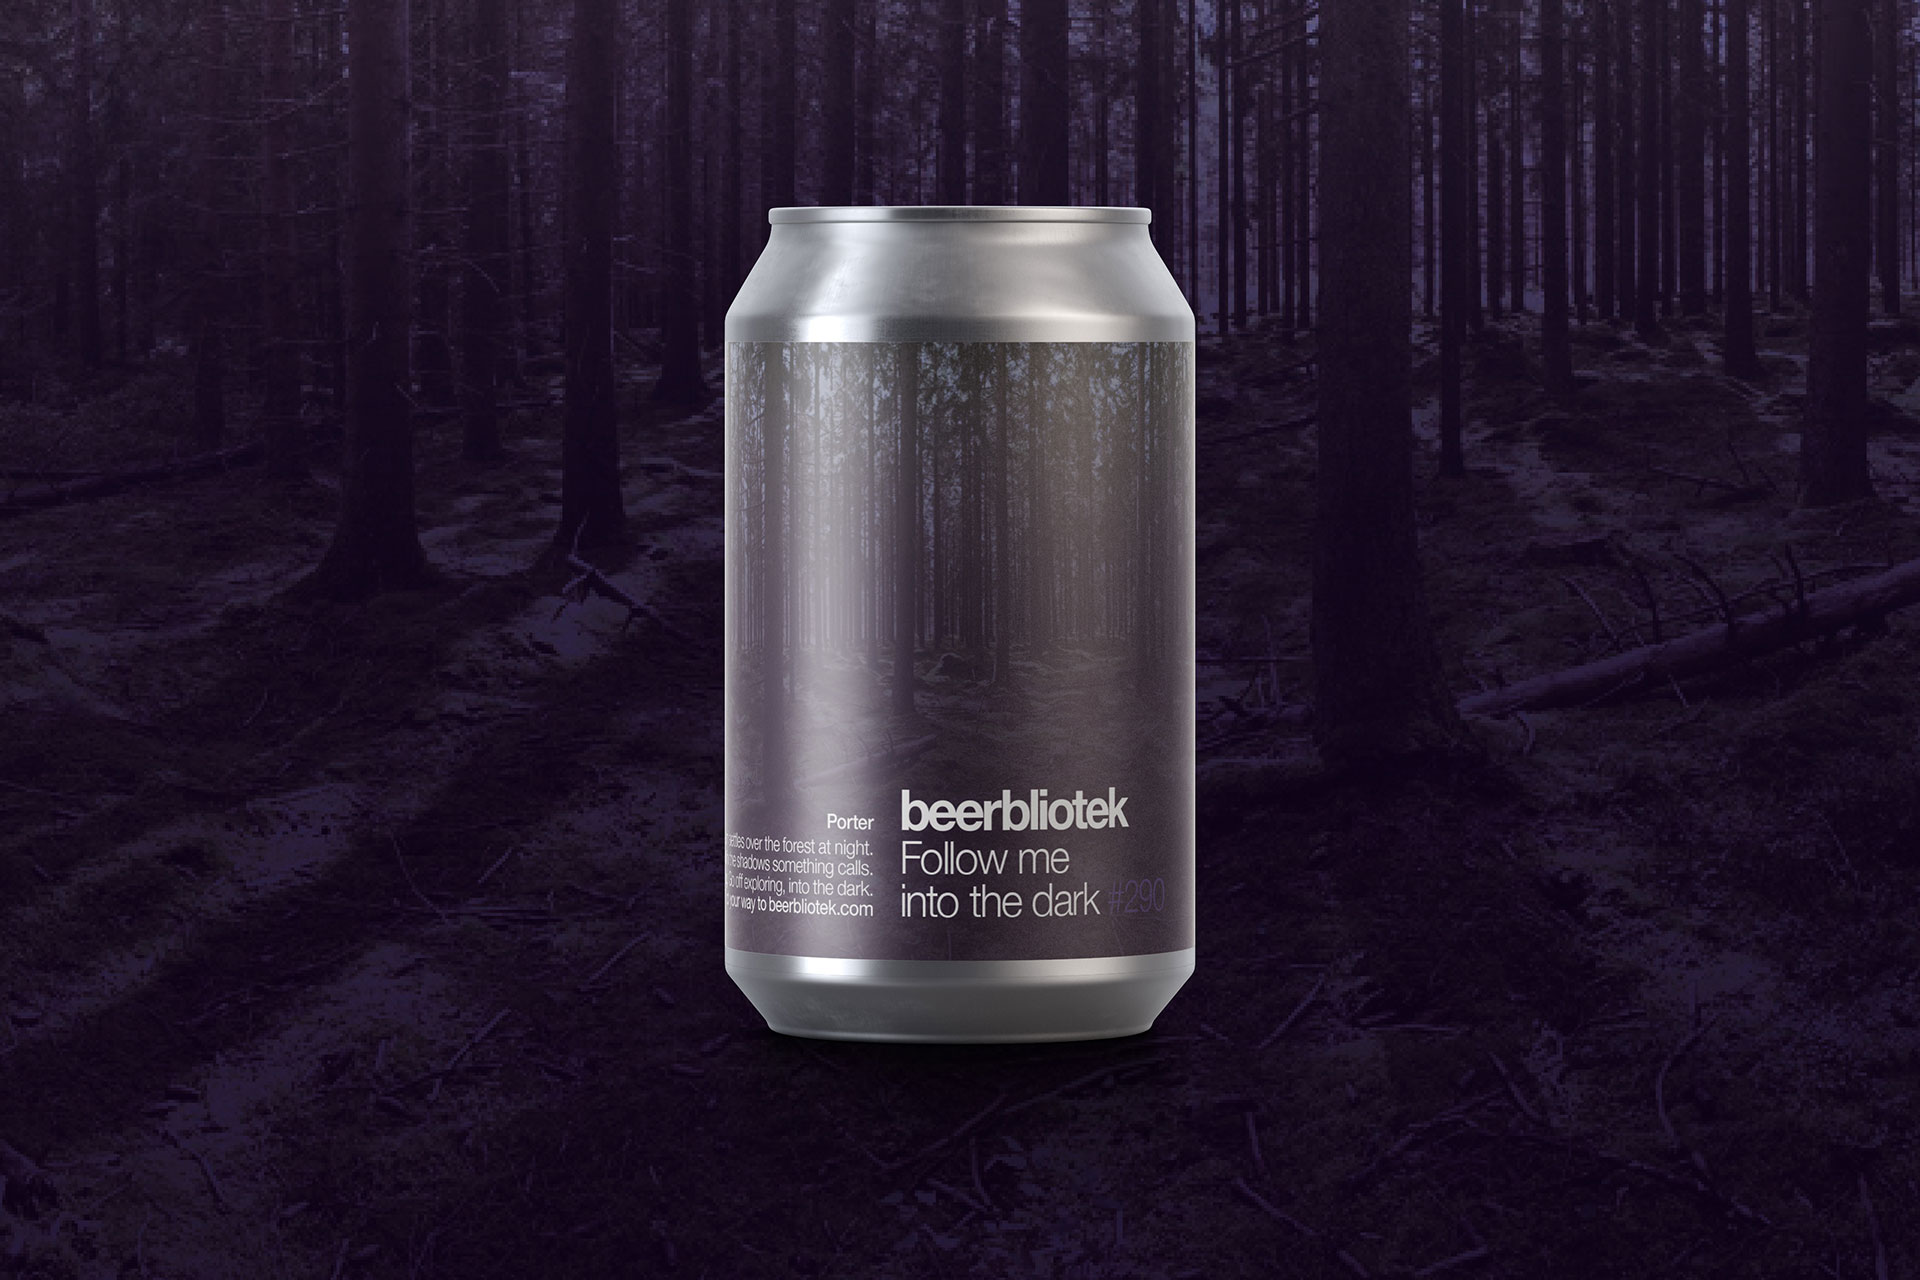 A can packshot of Follow me into the dark. A label designed by Darryl de Necker for Swedish Craft Brewery Beerbliotek.